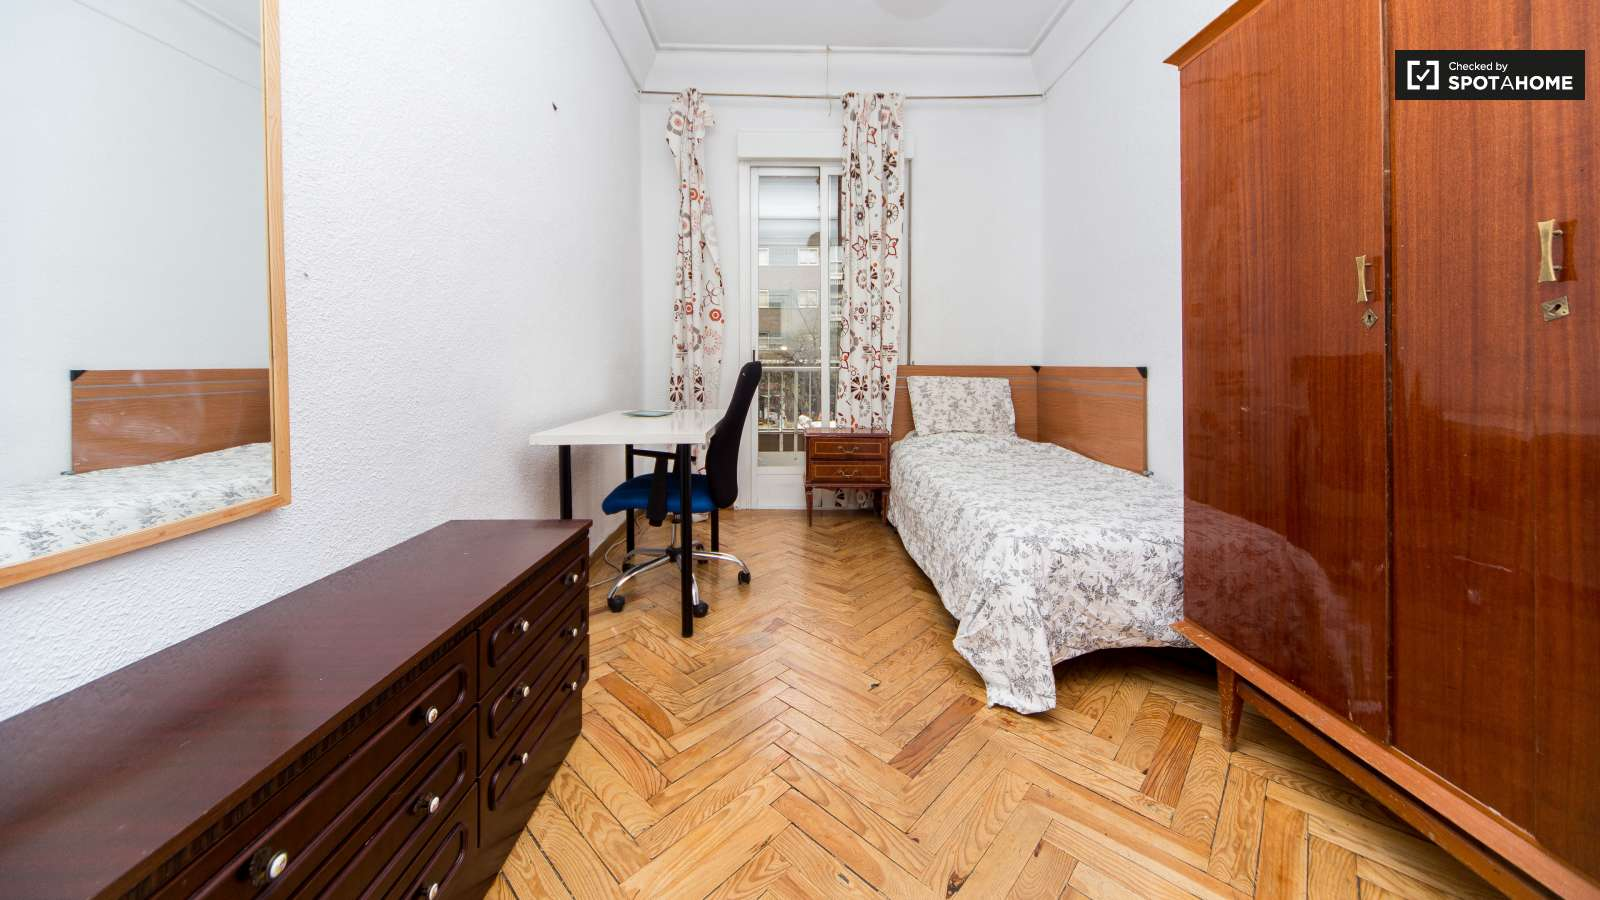 Single Bedroom Nice Rooms In 5 Room Apartment Spotahome